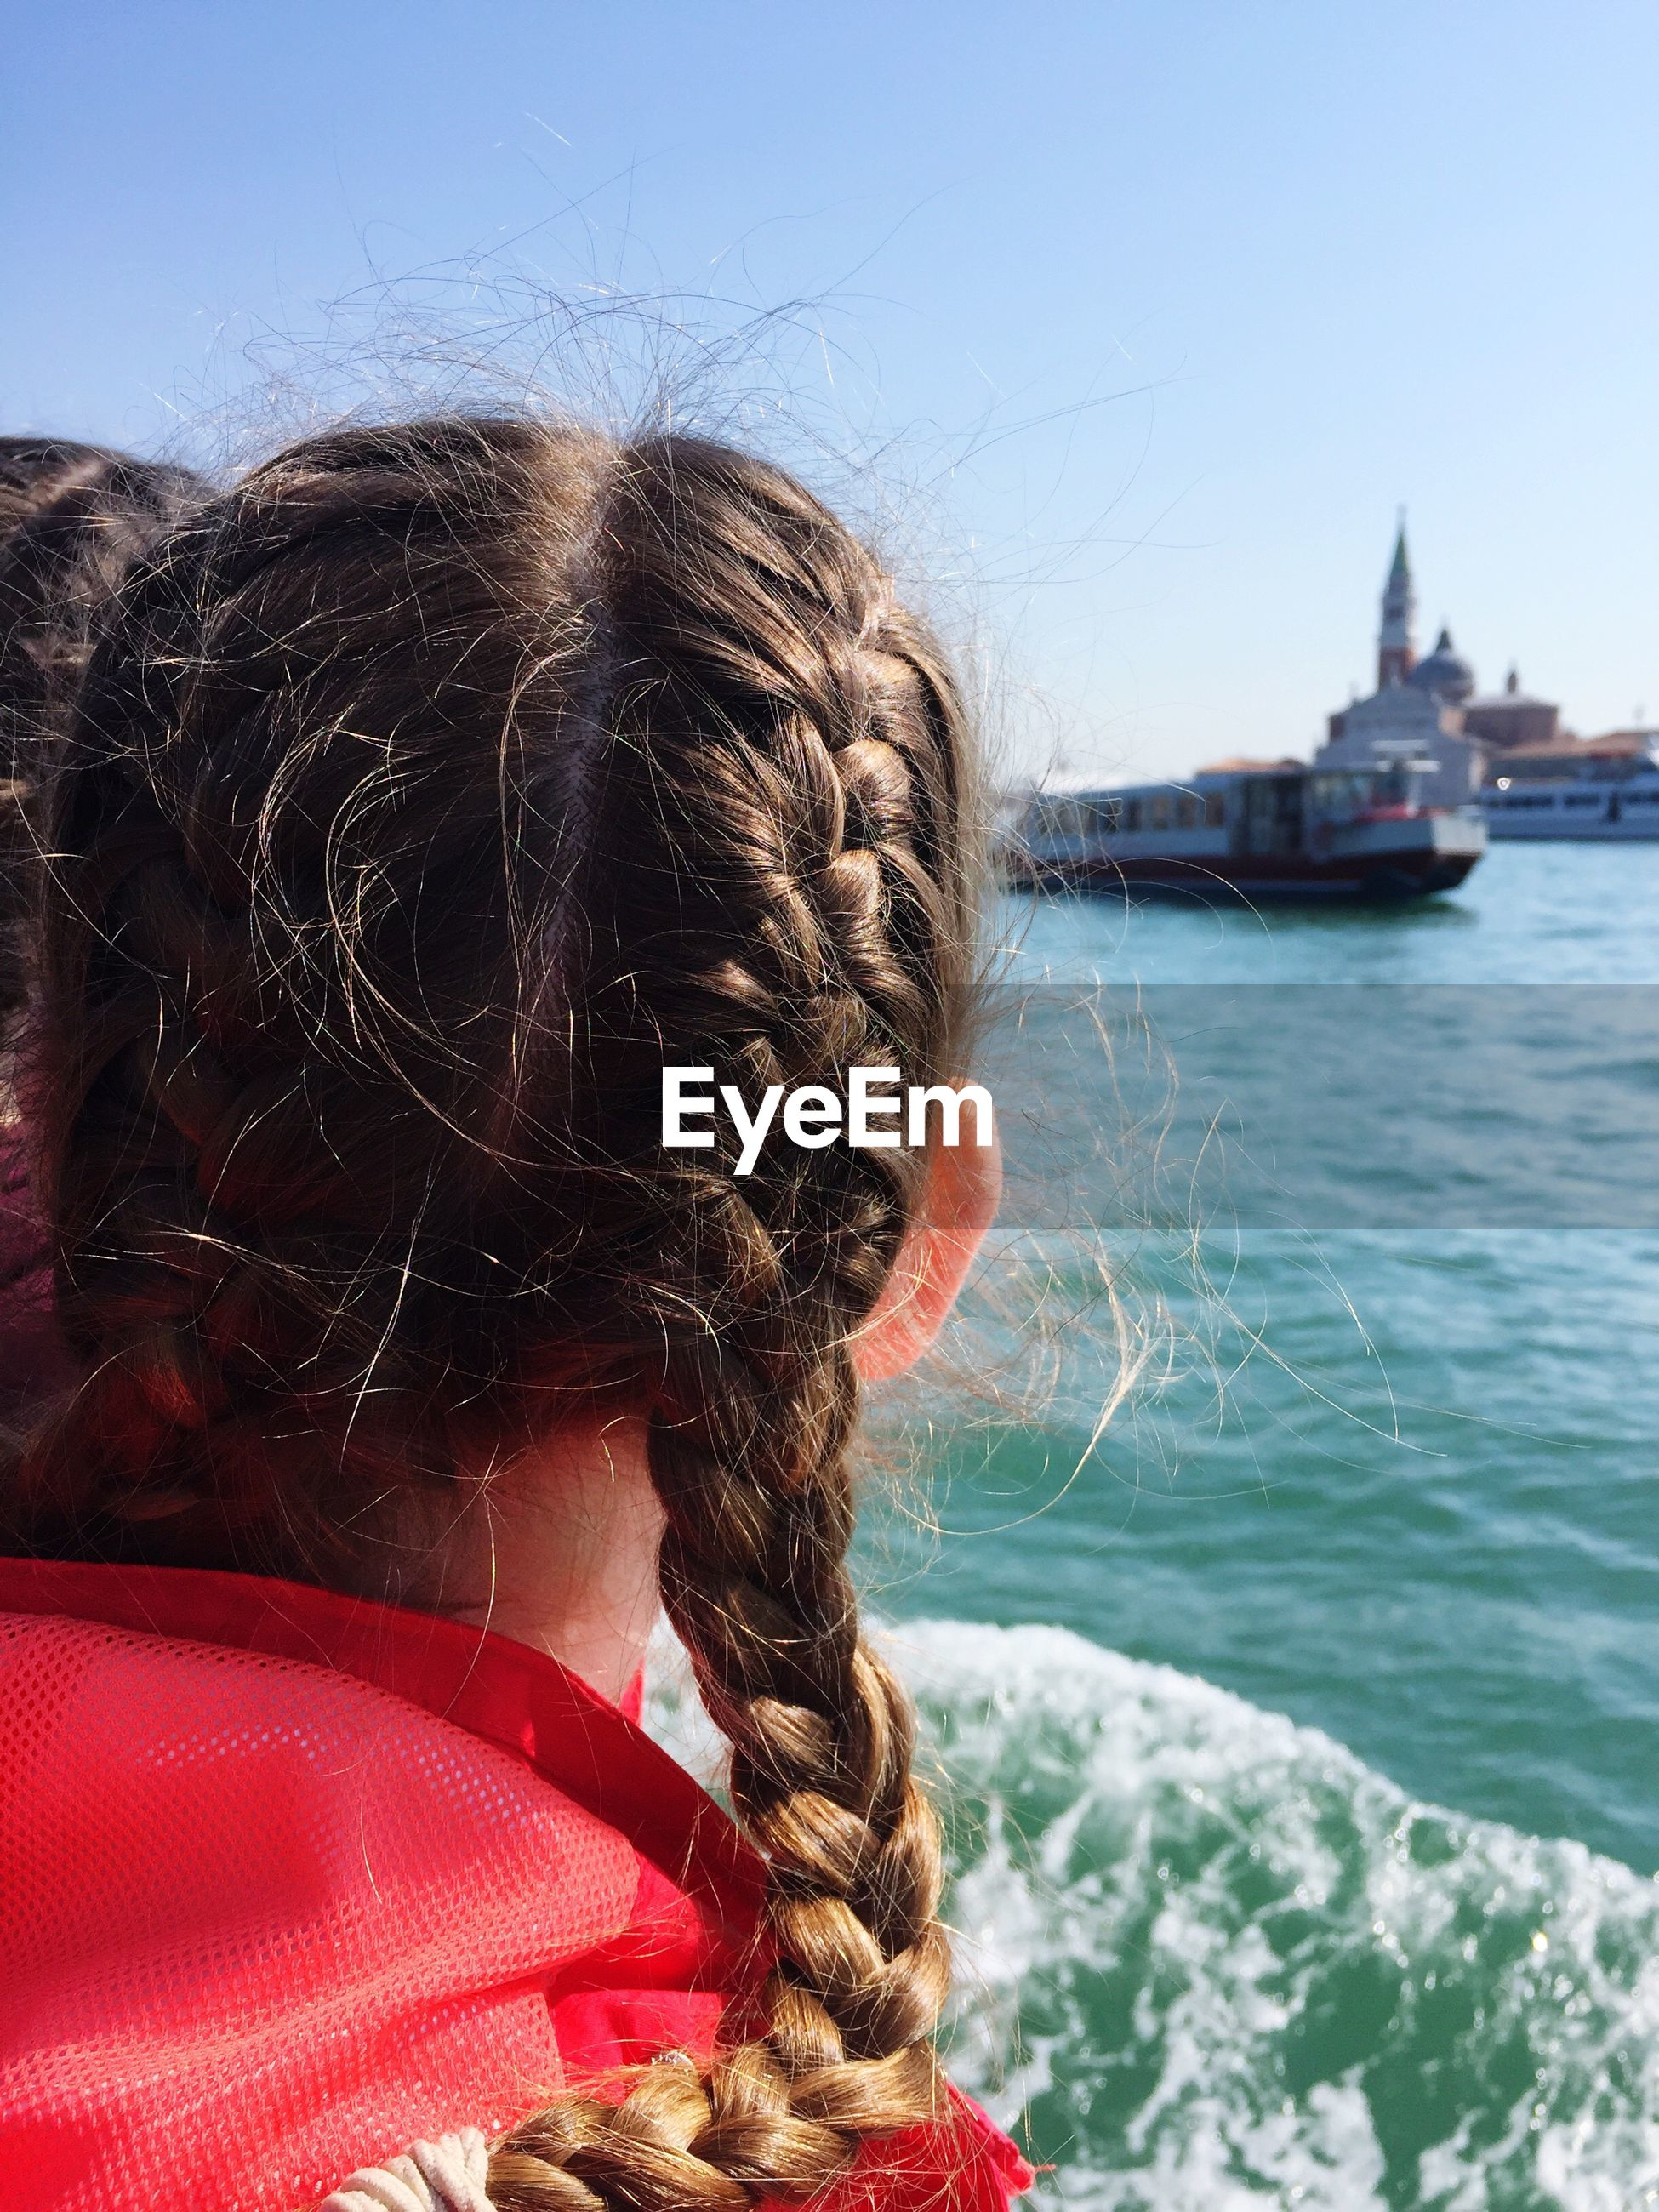 Rear view of woman with braided hair by grand canal against sky